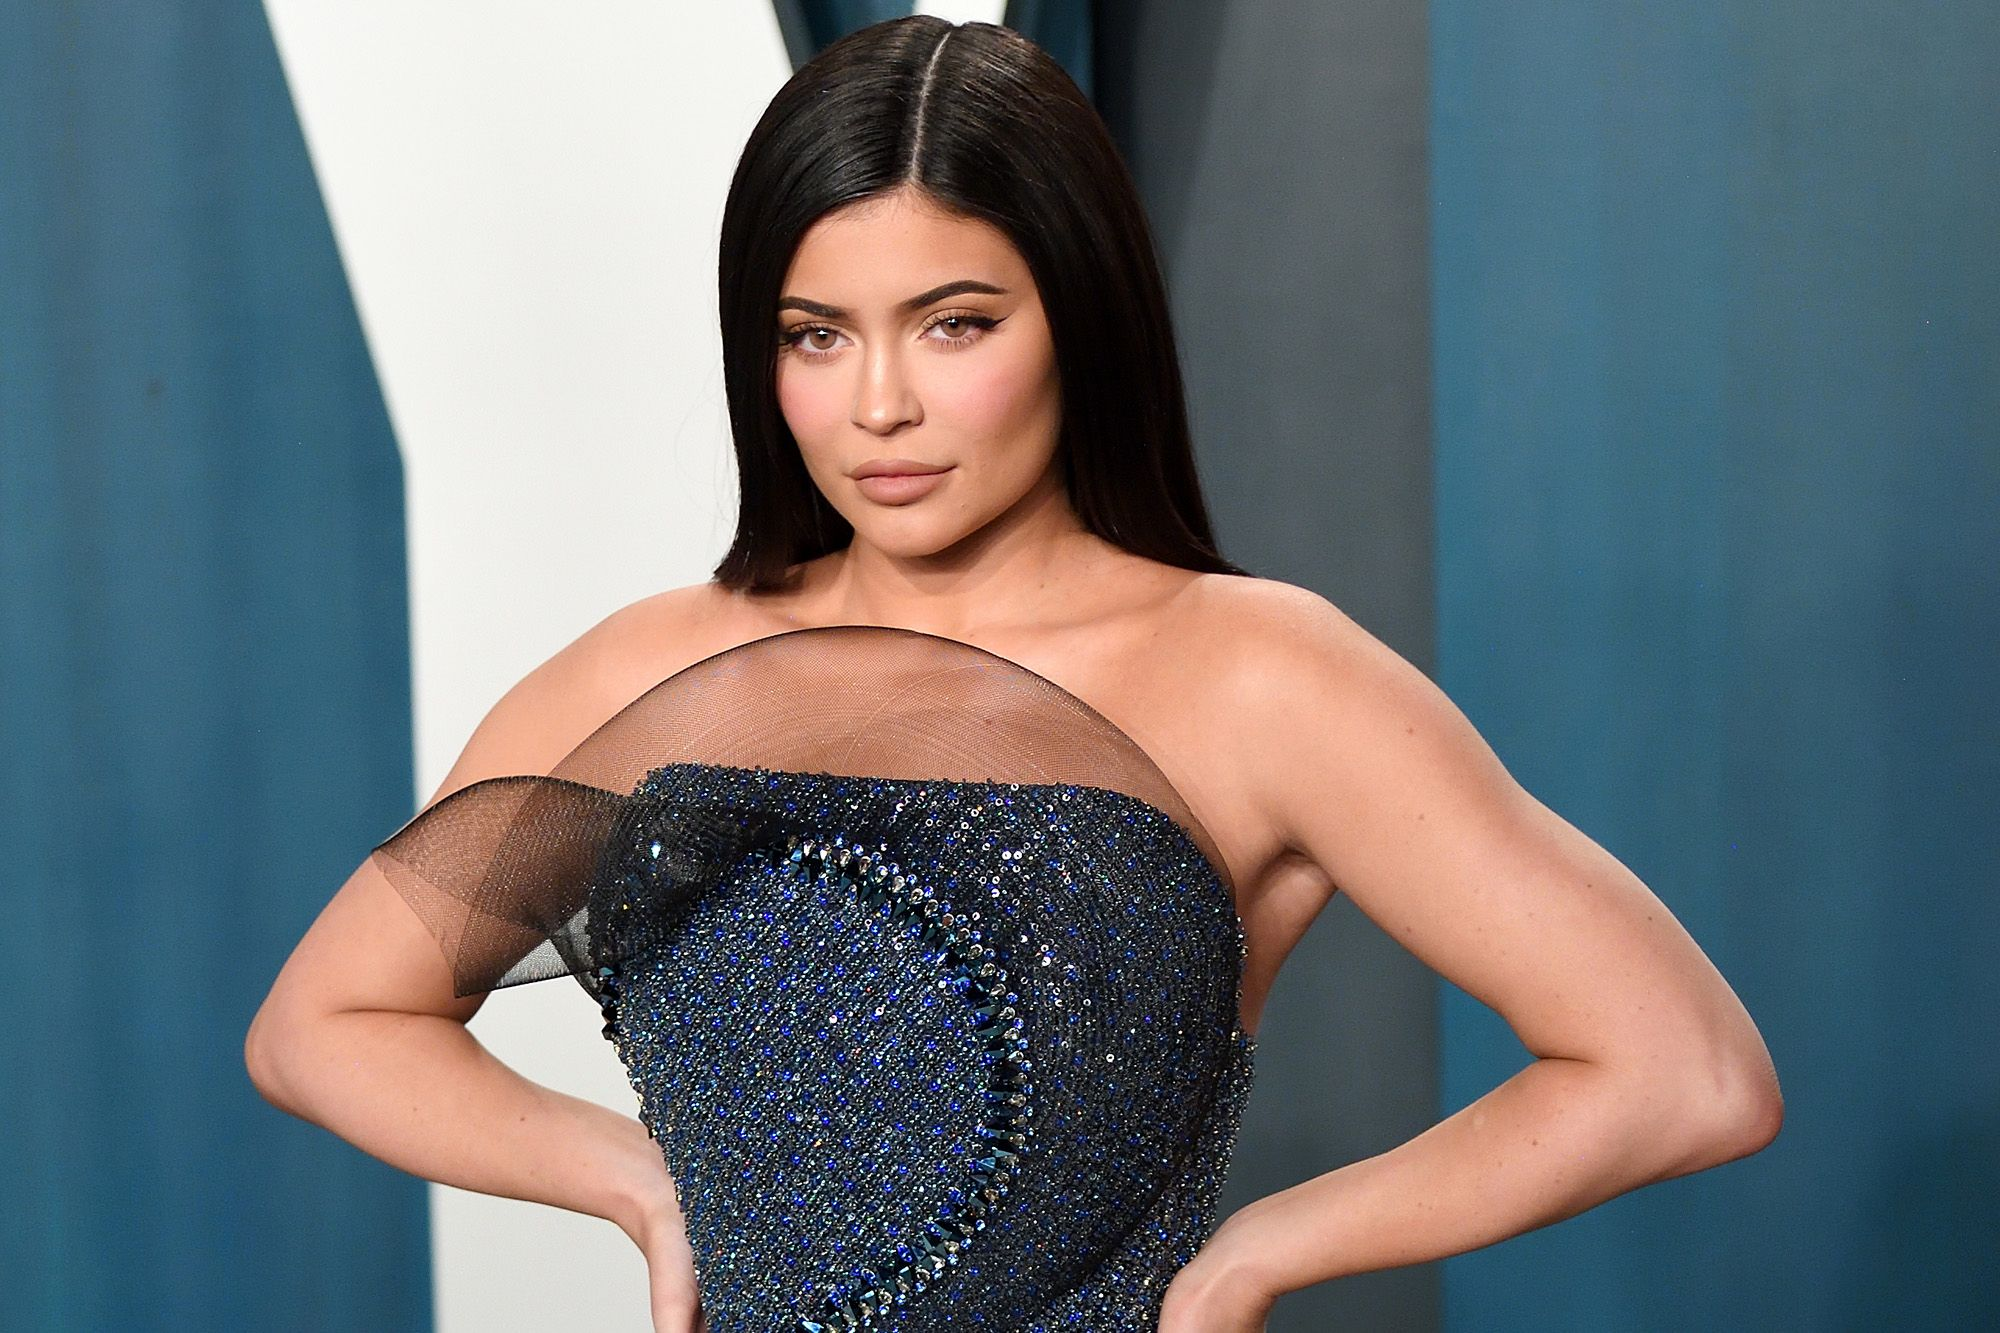 Kylie Jenner Becomes The Highest-Paid Celebrity of 2020